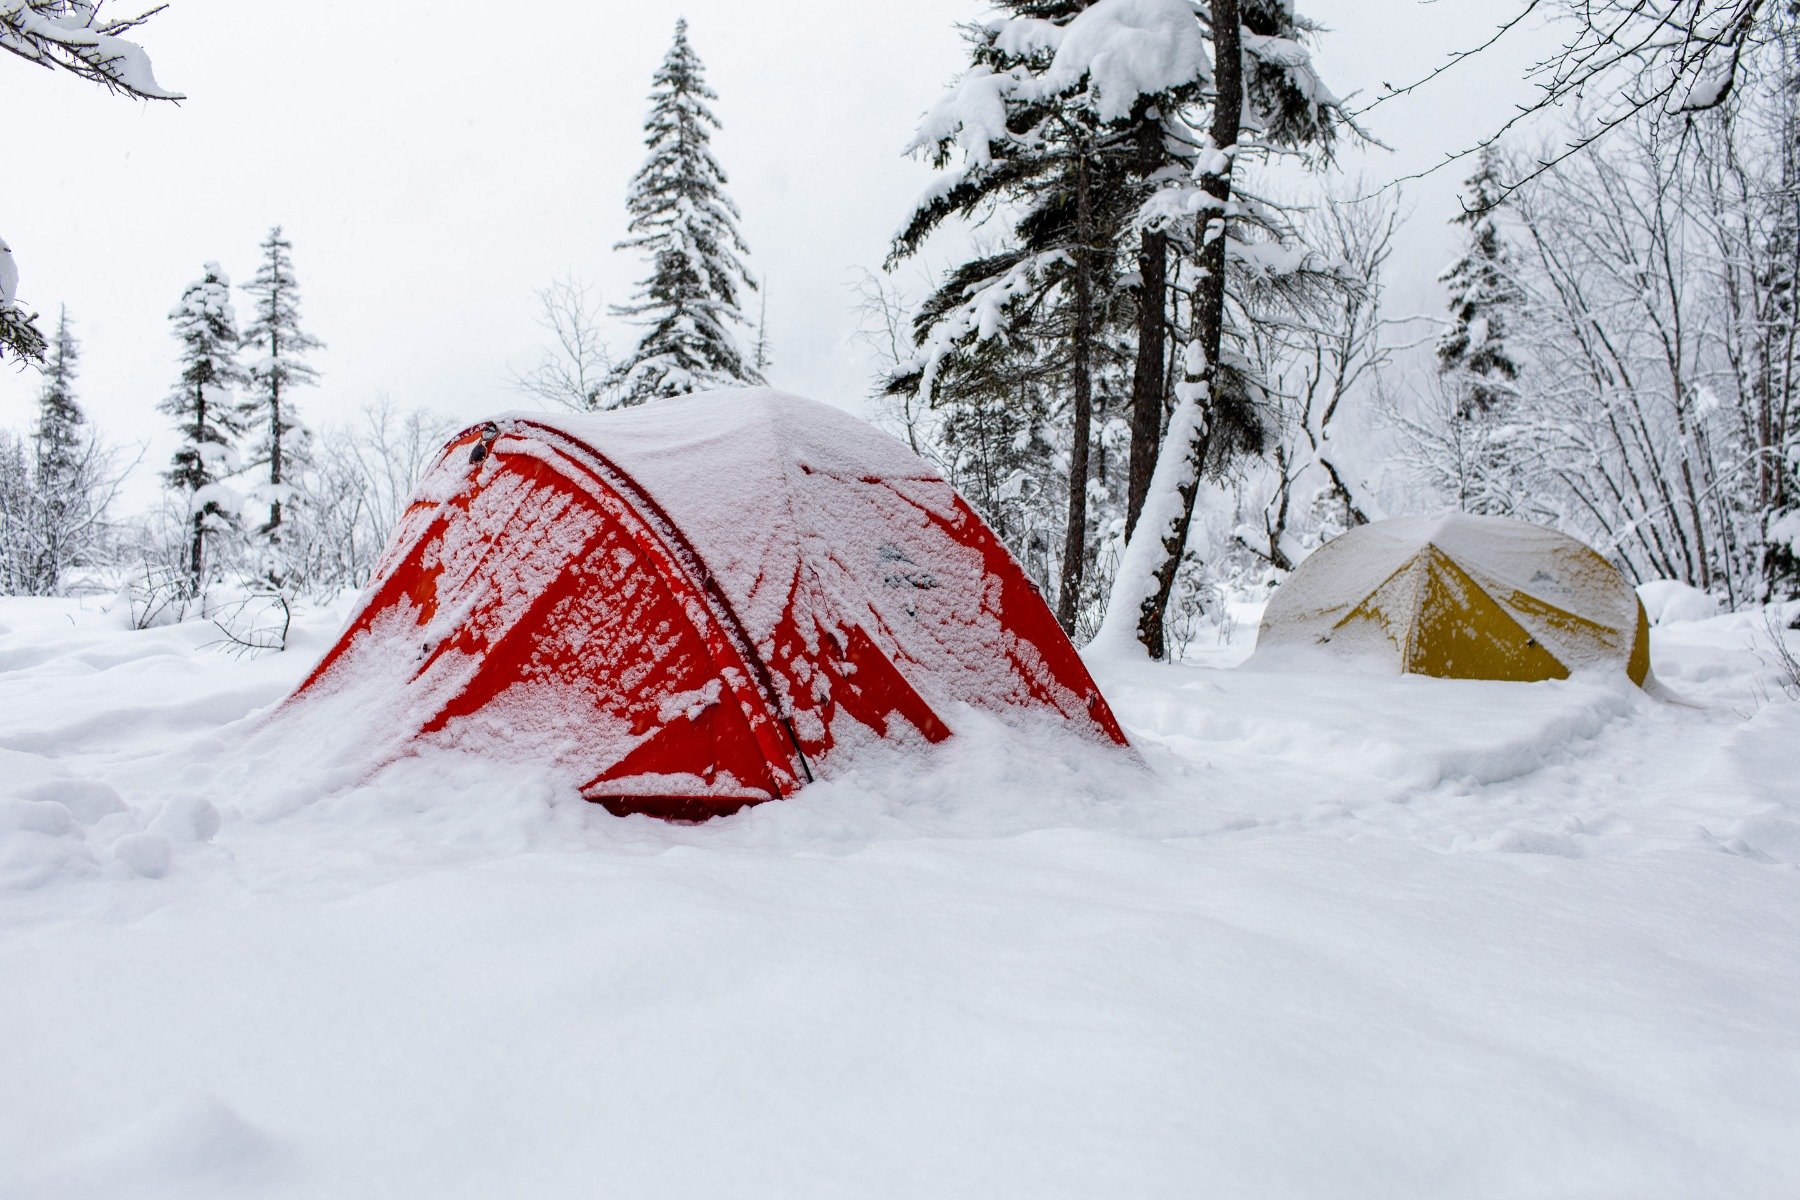 Two bright coloured tents sit at a campsite nearly covered in snow.